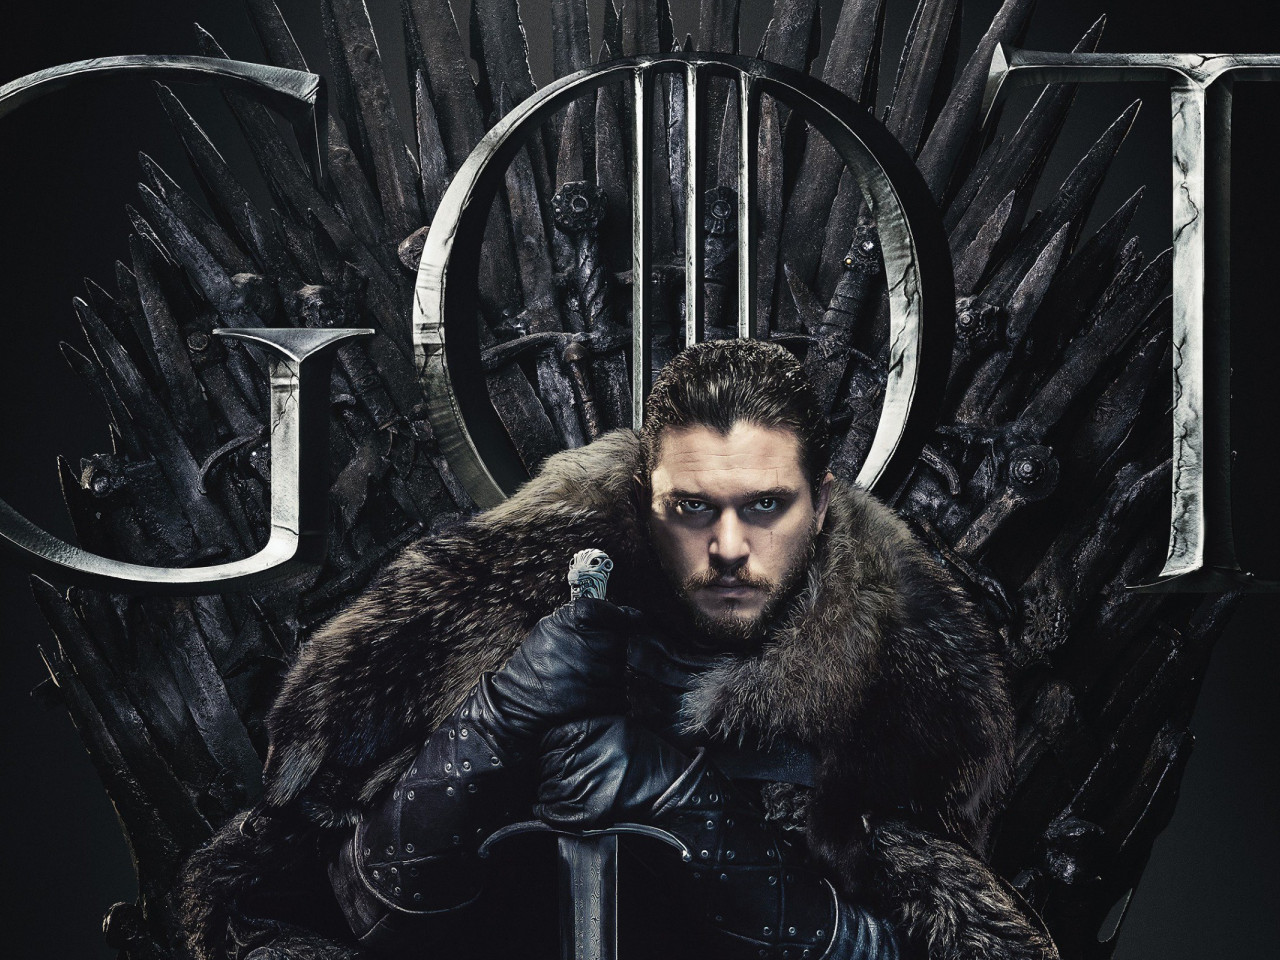 Game of Thrones 8 wallpaper 1280x960